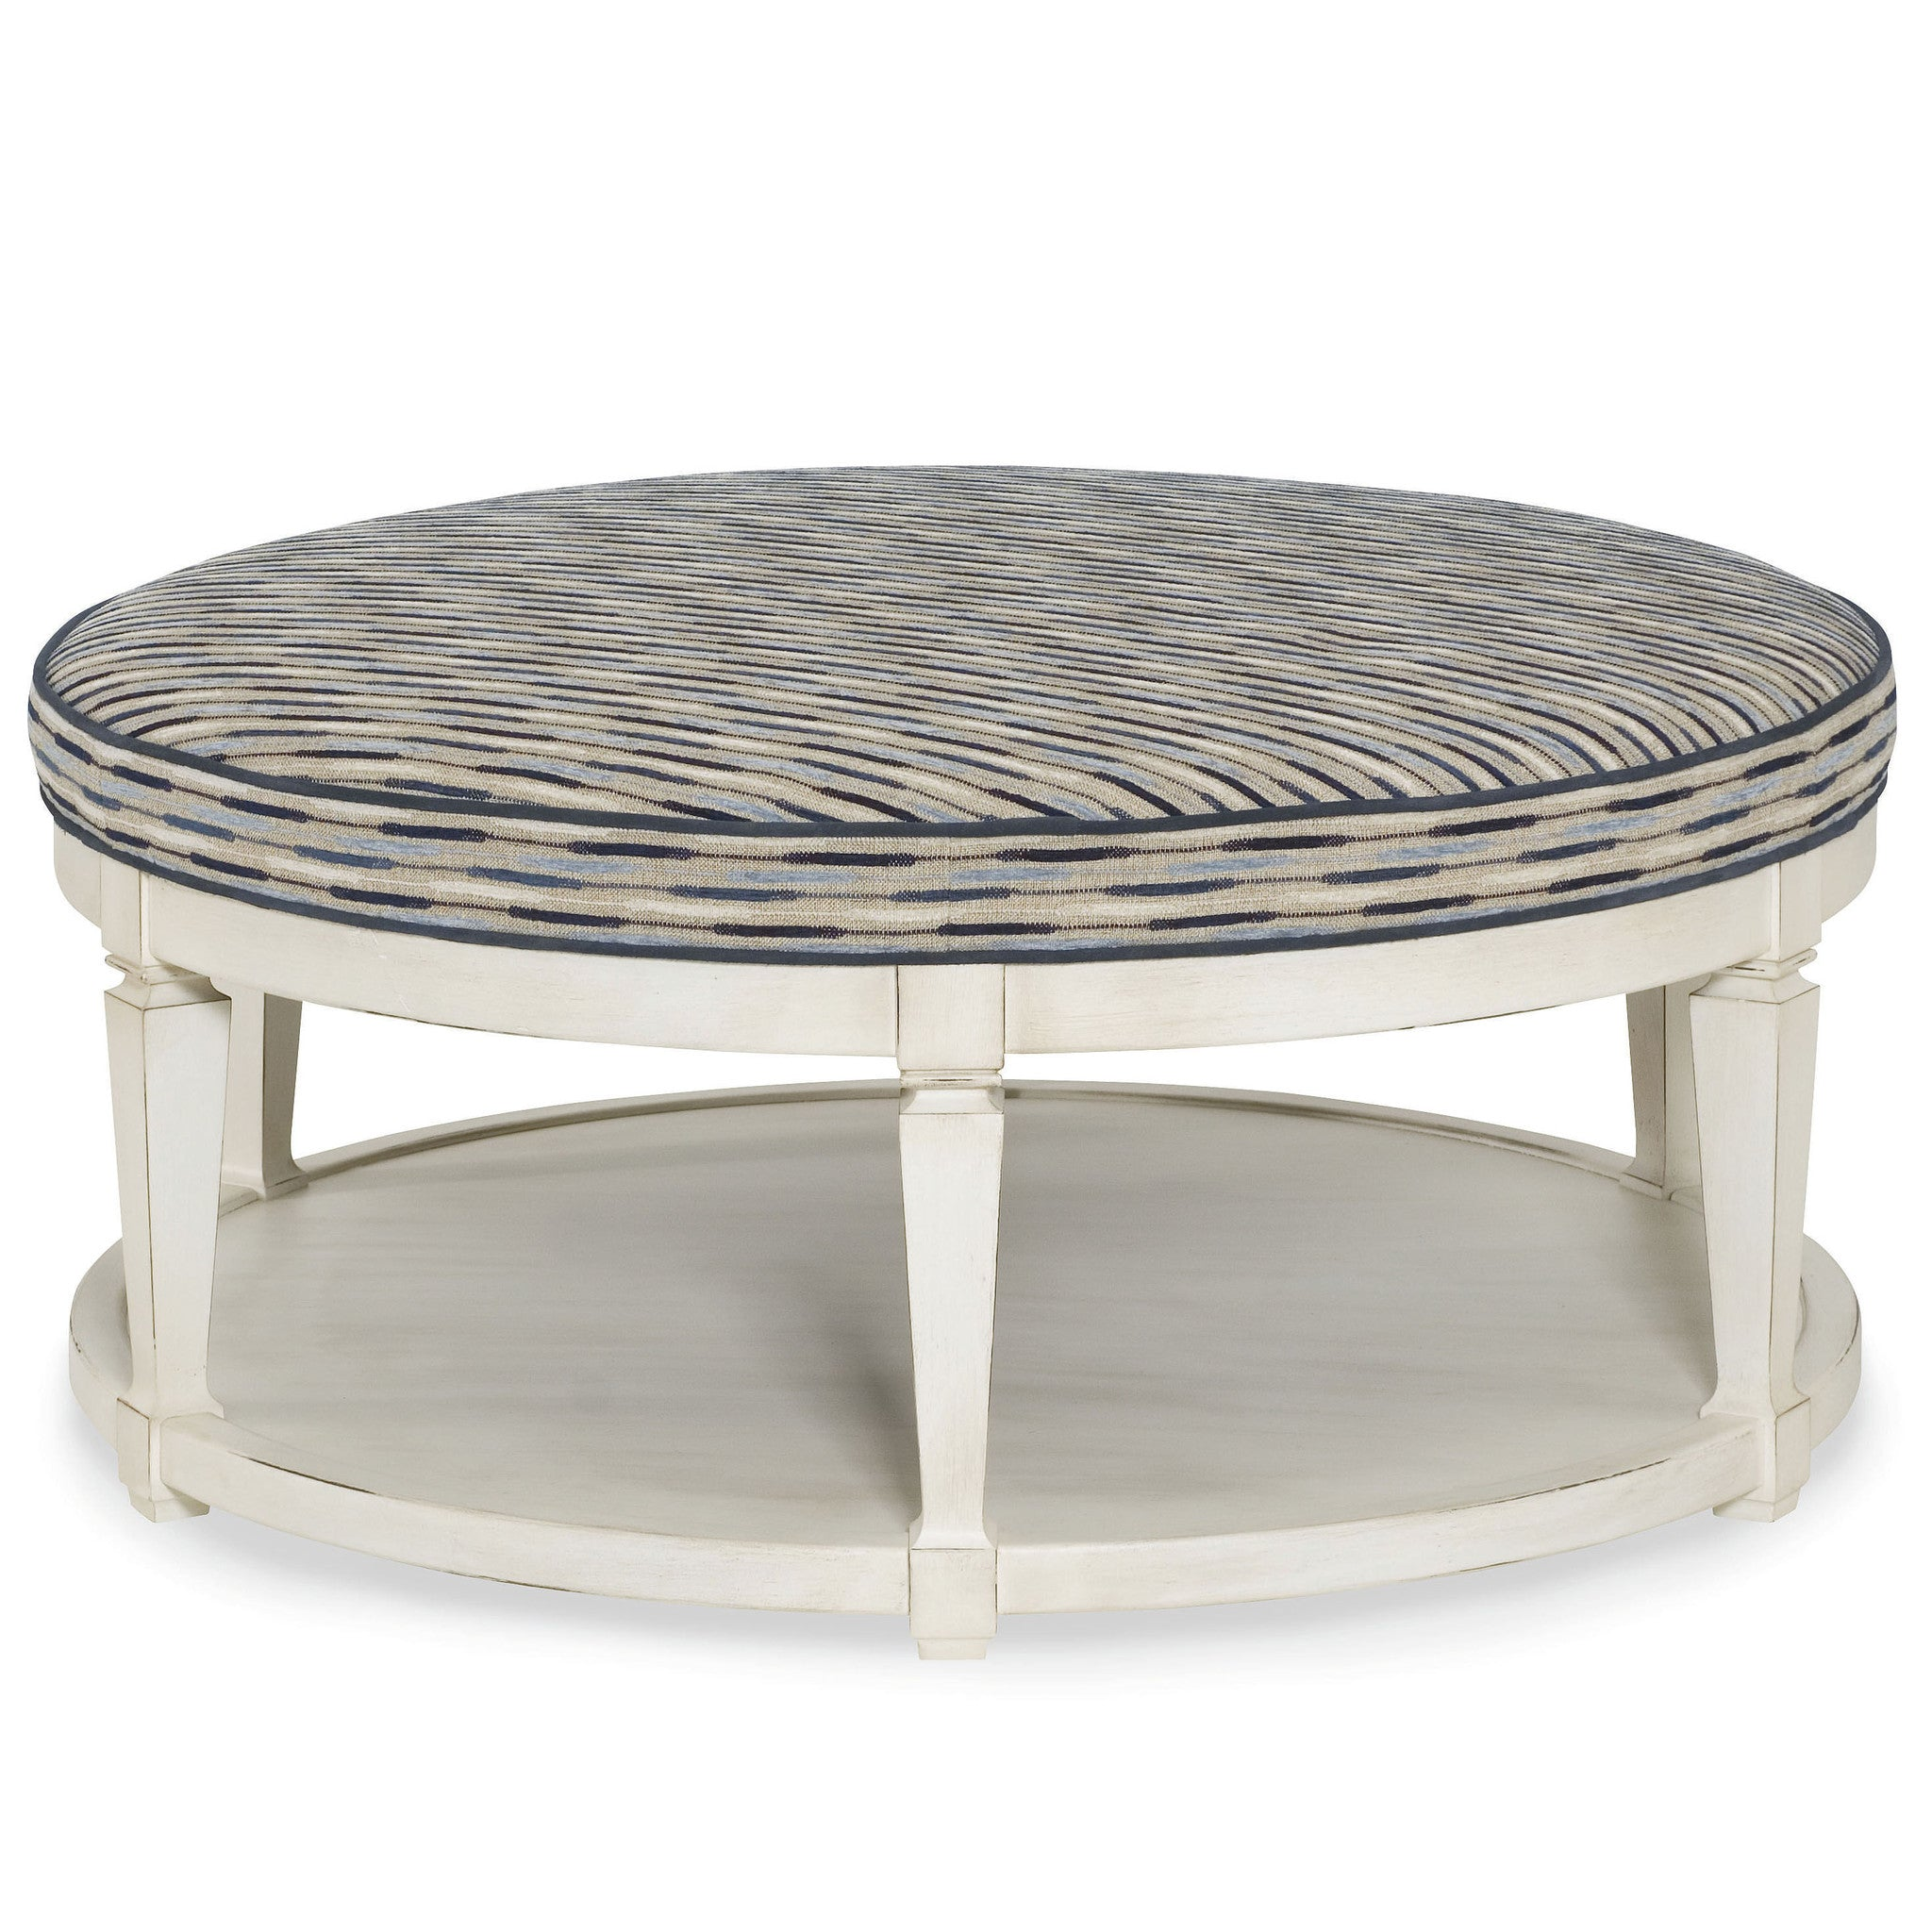 Carrie Table Ottoman